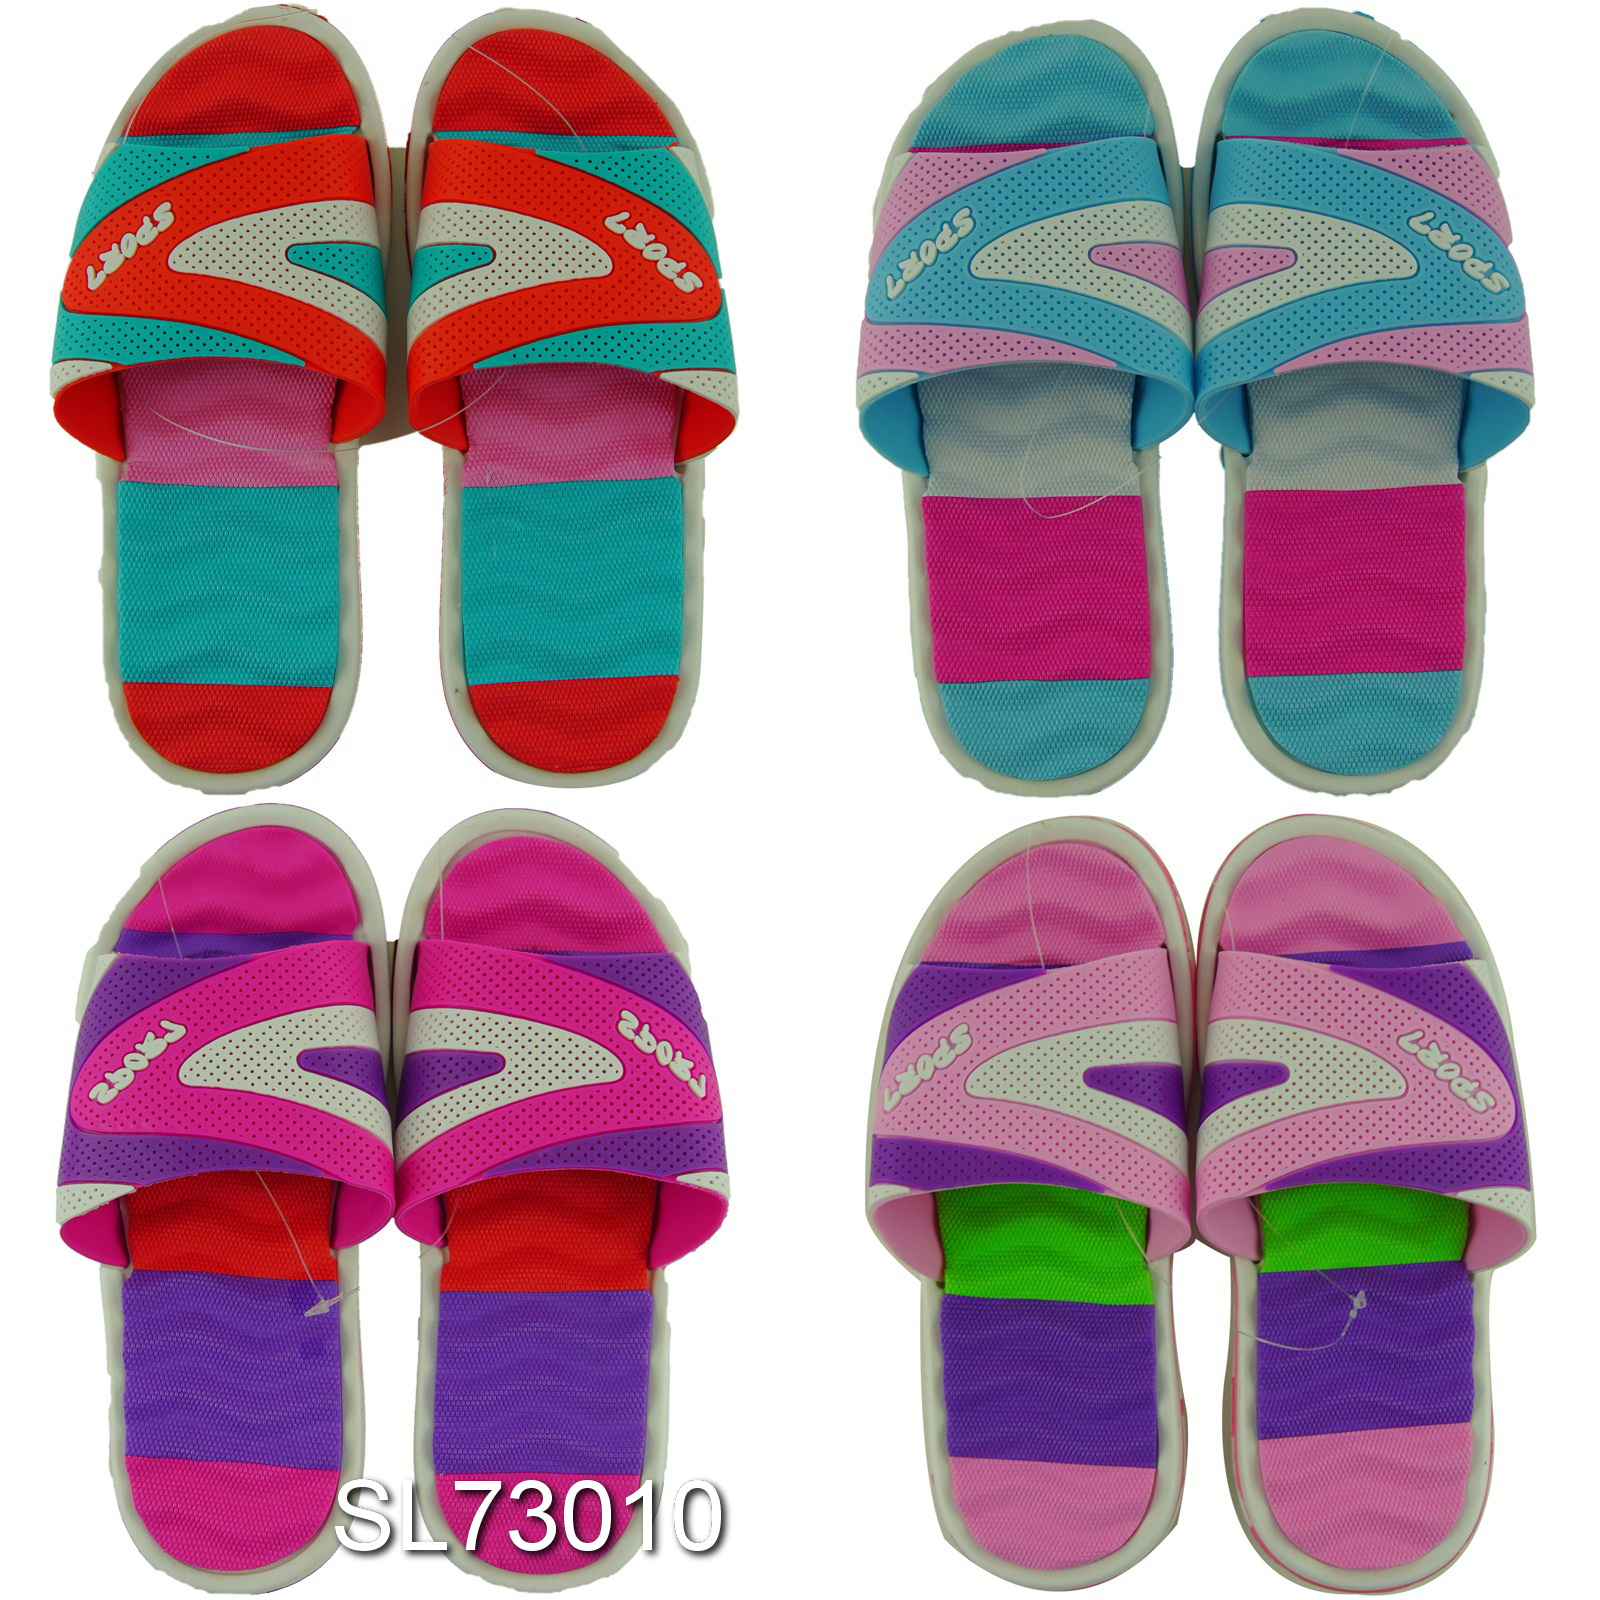 49d47a150bde58 Wholesale Sandals - Women s Sports Slippers - 60 Pairs